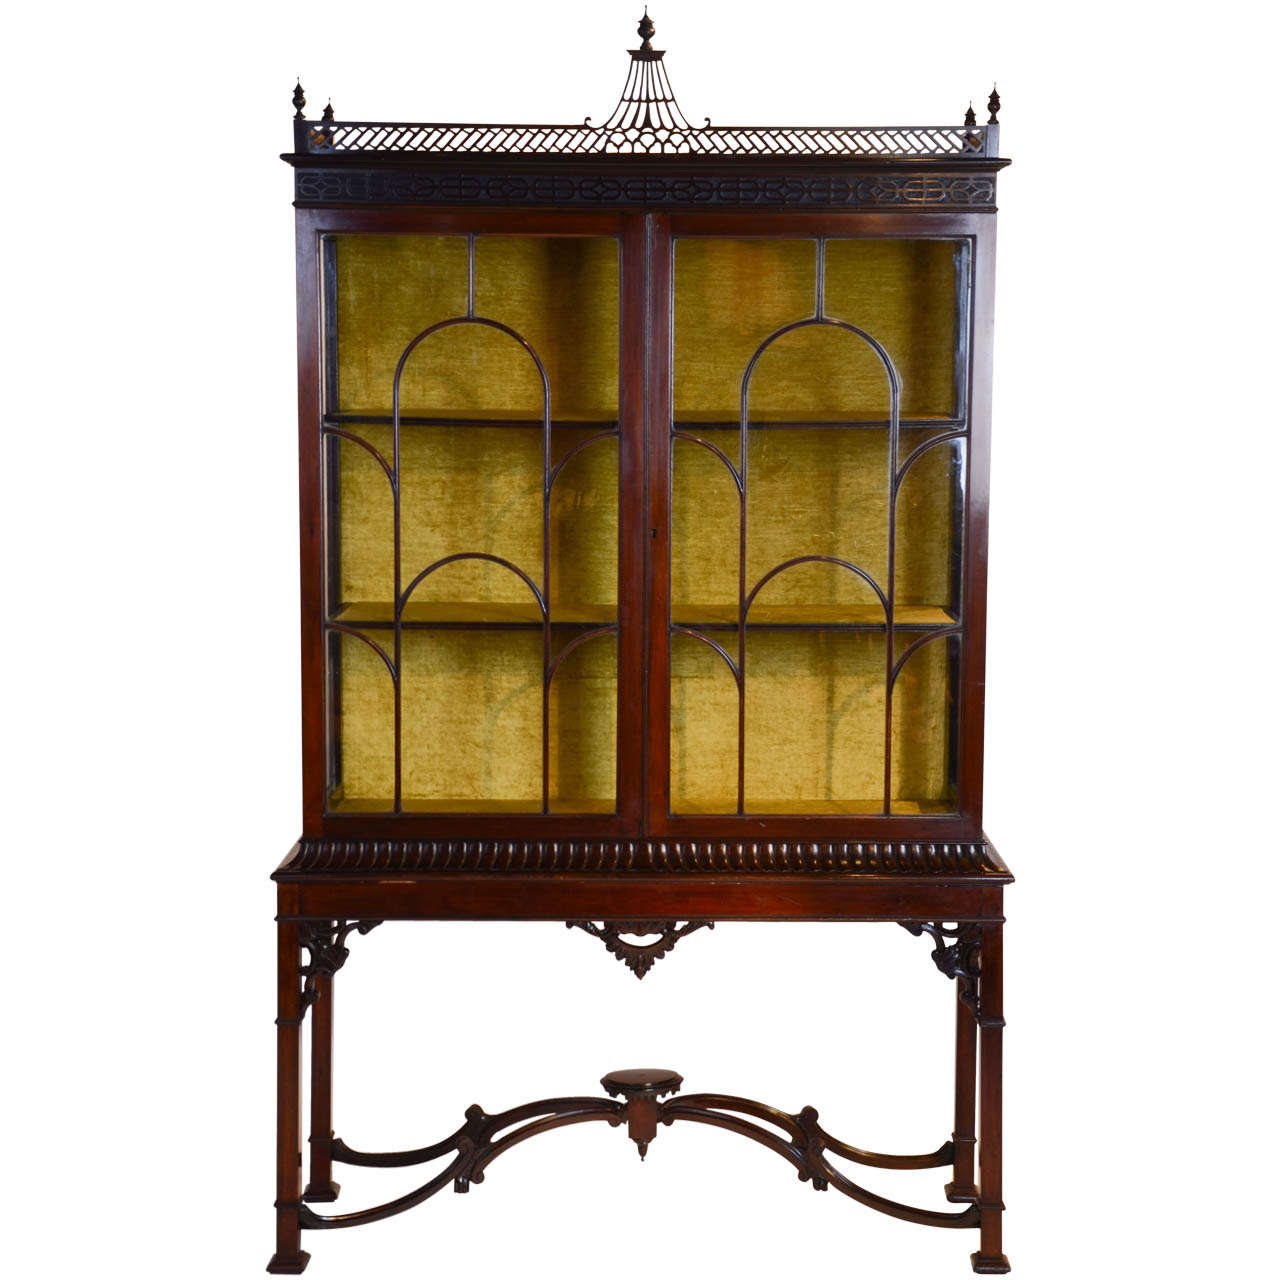 Ordinaire A Centennial Chinese Chippendale Display Cabinet. For Sale